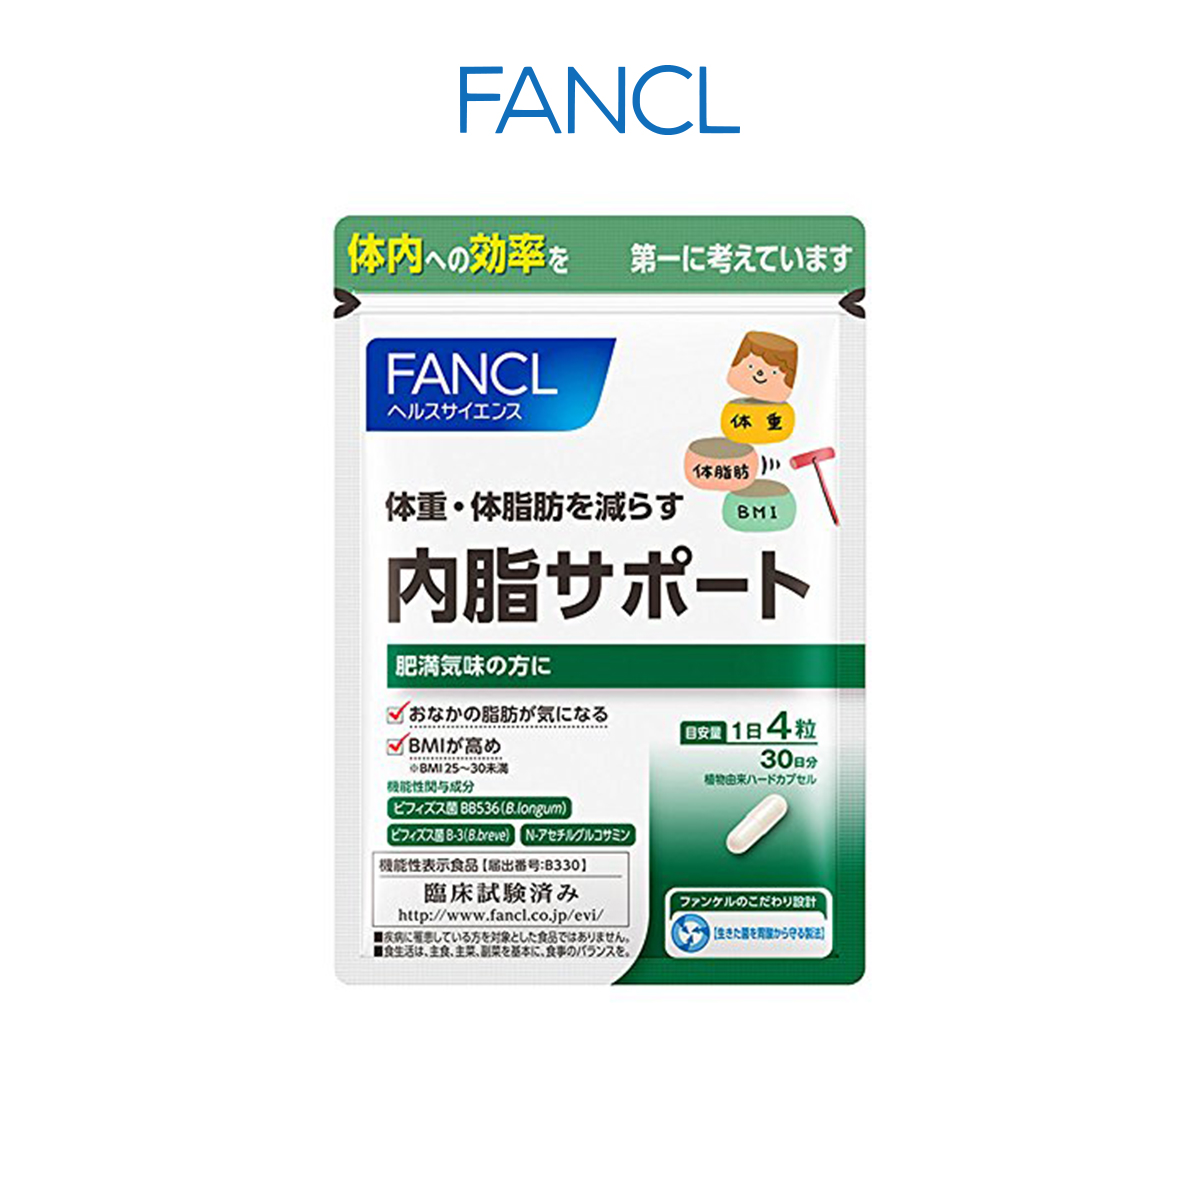 Buy FANCL Internal Fat Support  Daily & Health Supplements 30 Days 120 Tablets  [Ship from SG / 100% Authentic] Singapore